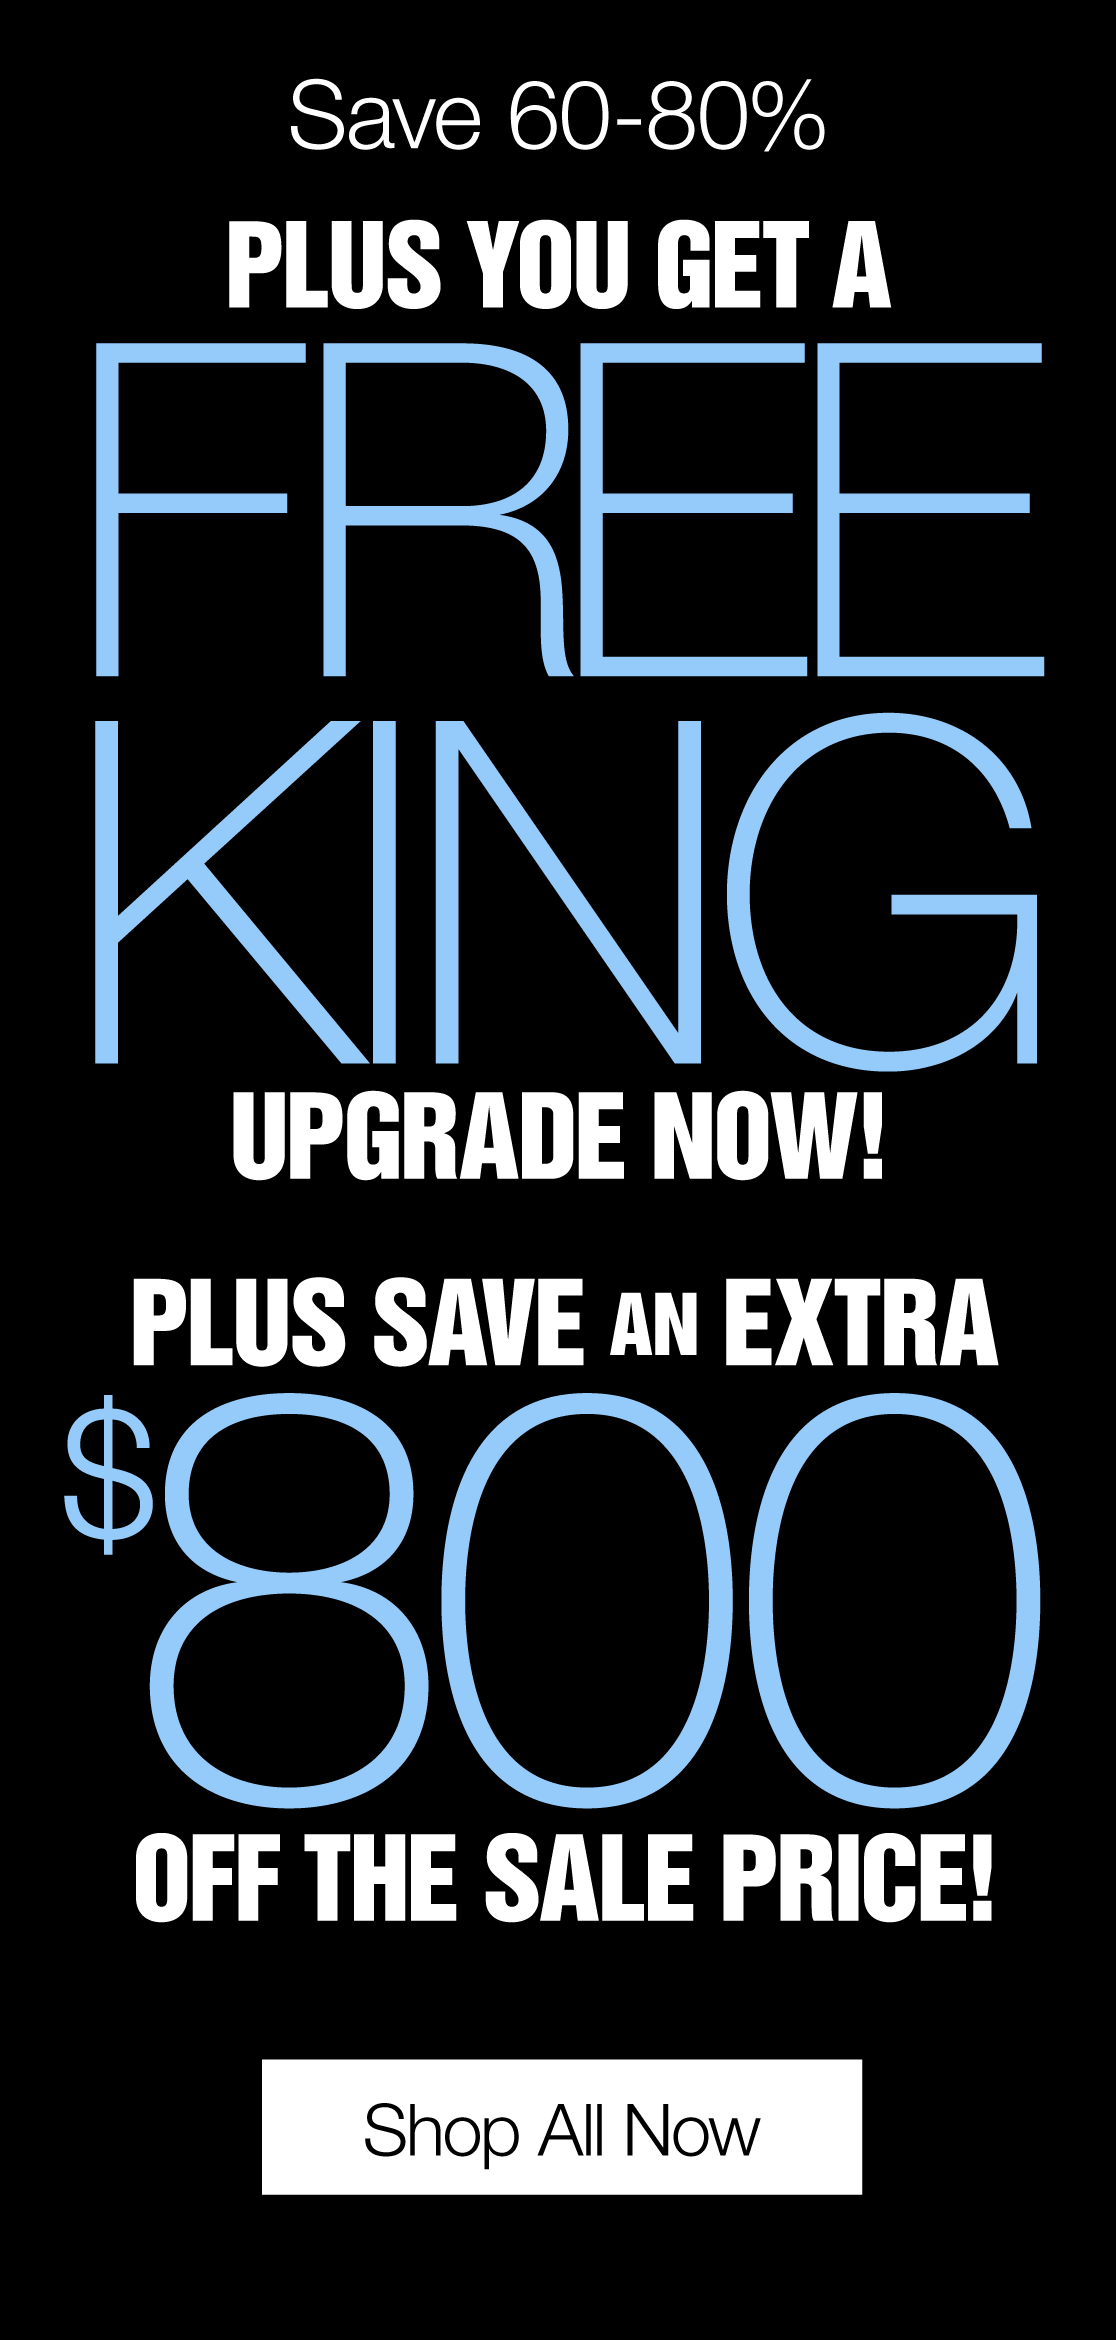 Save 60-80% Plus You Get A FREE KING Upgrade Now! Plus Save an Extra $800 off the sale price!